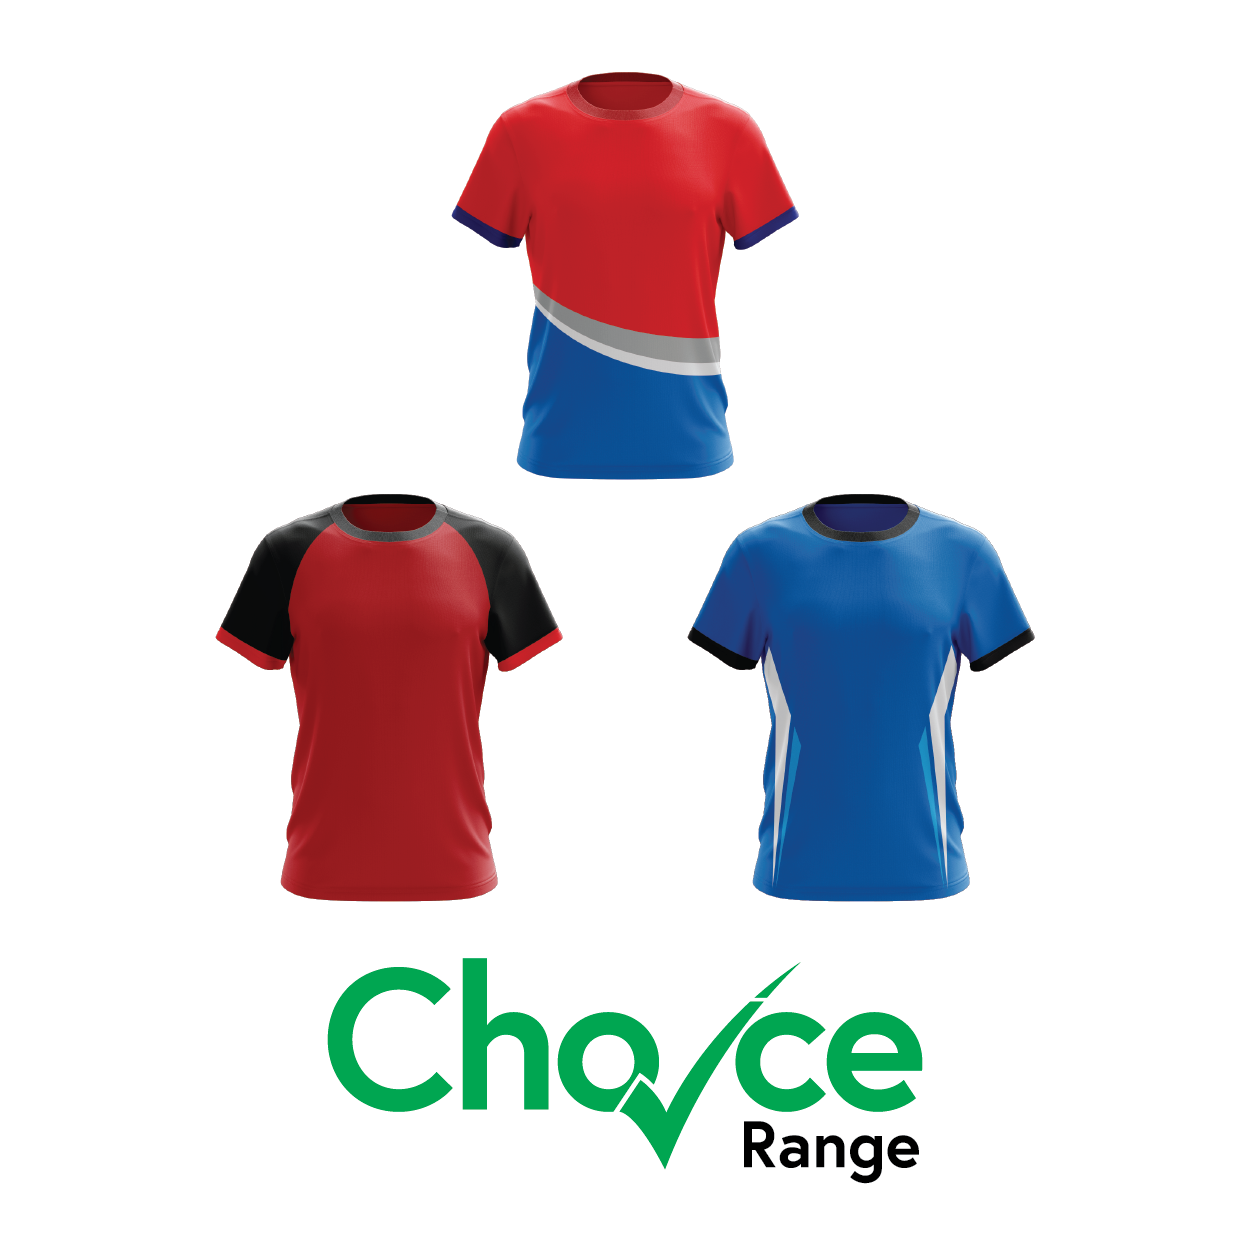 Choice Range T-Shirt